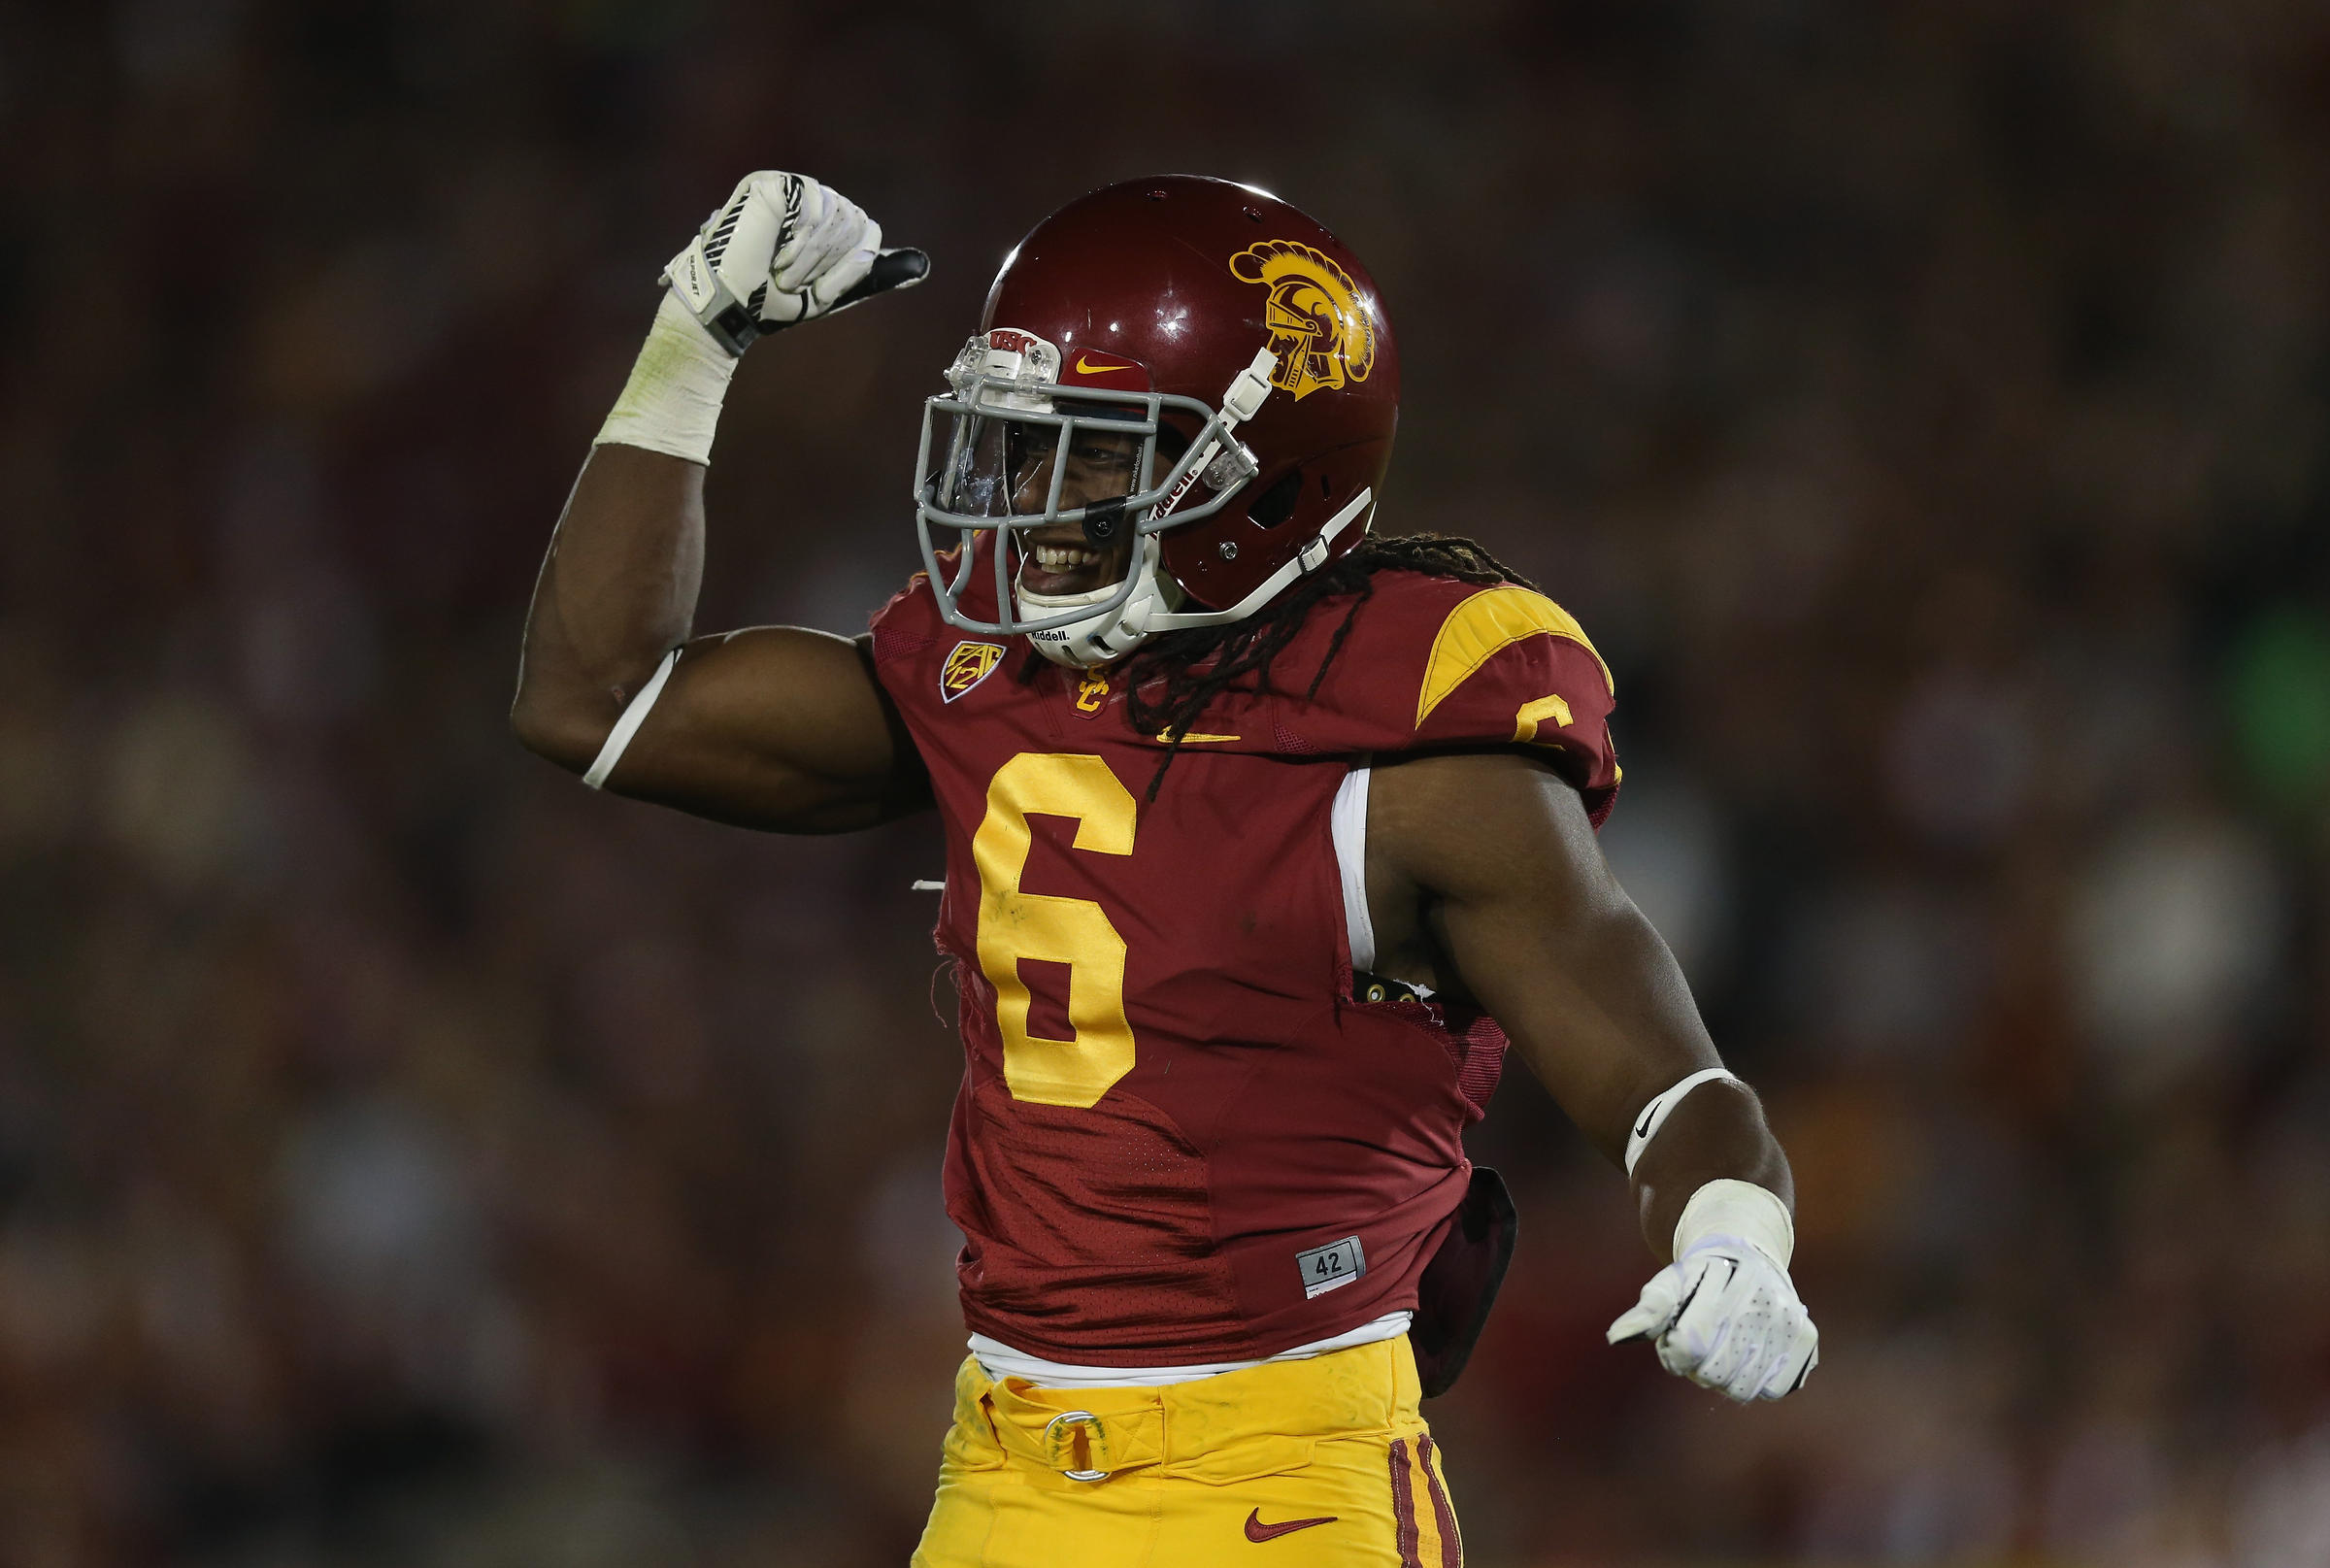 official photos 56b9c b4168 USC's Josh Shaw Suspended For Making Up Heroic Tale | WUNC